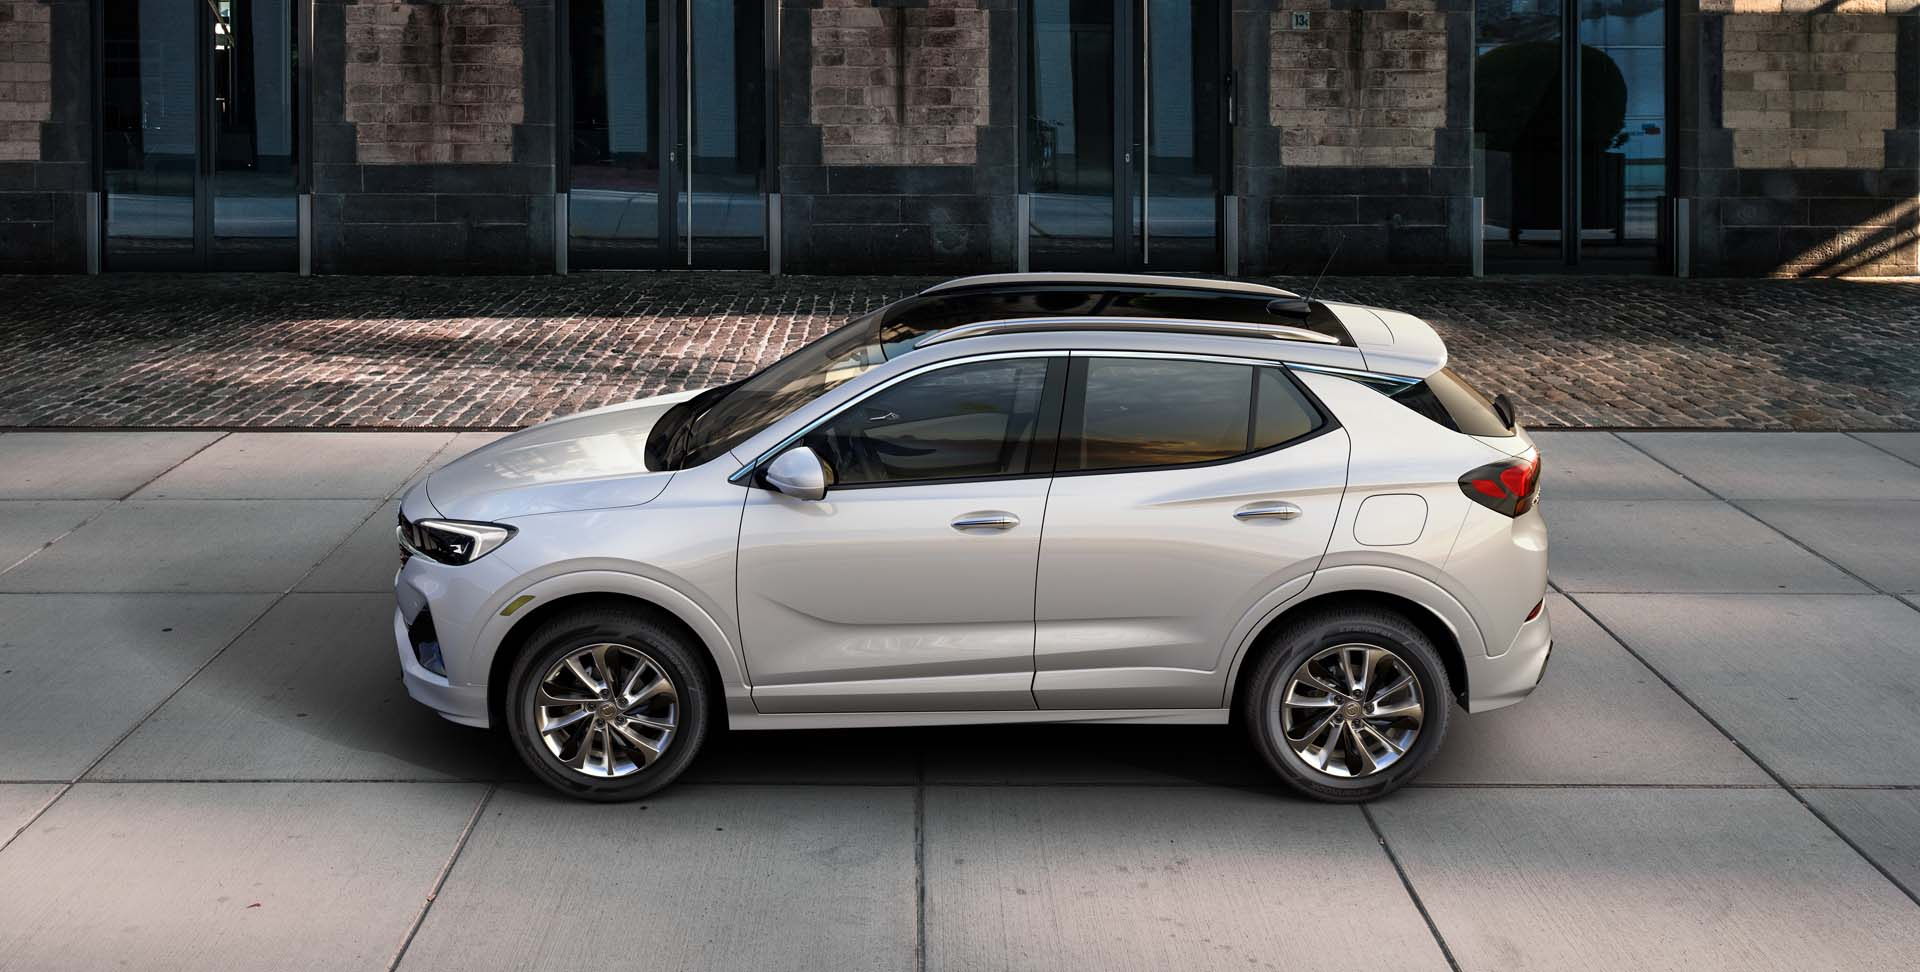 2020 Buick Encore Gx Sets The Table For Small Crossover Suvs New 2021 Buick Encore Essence Reviews, Specs, Configurations